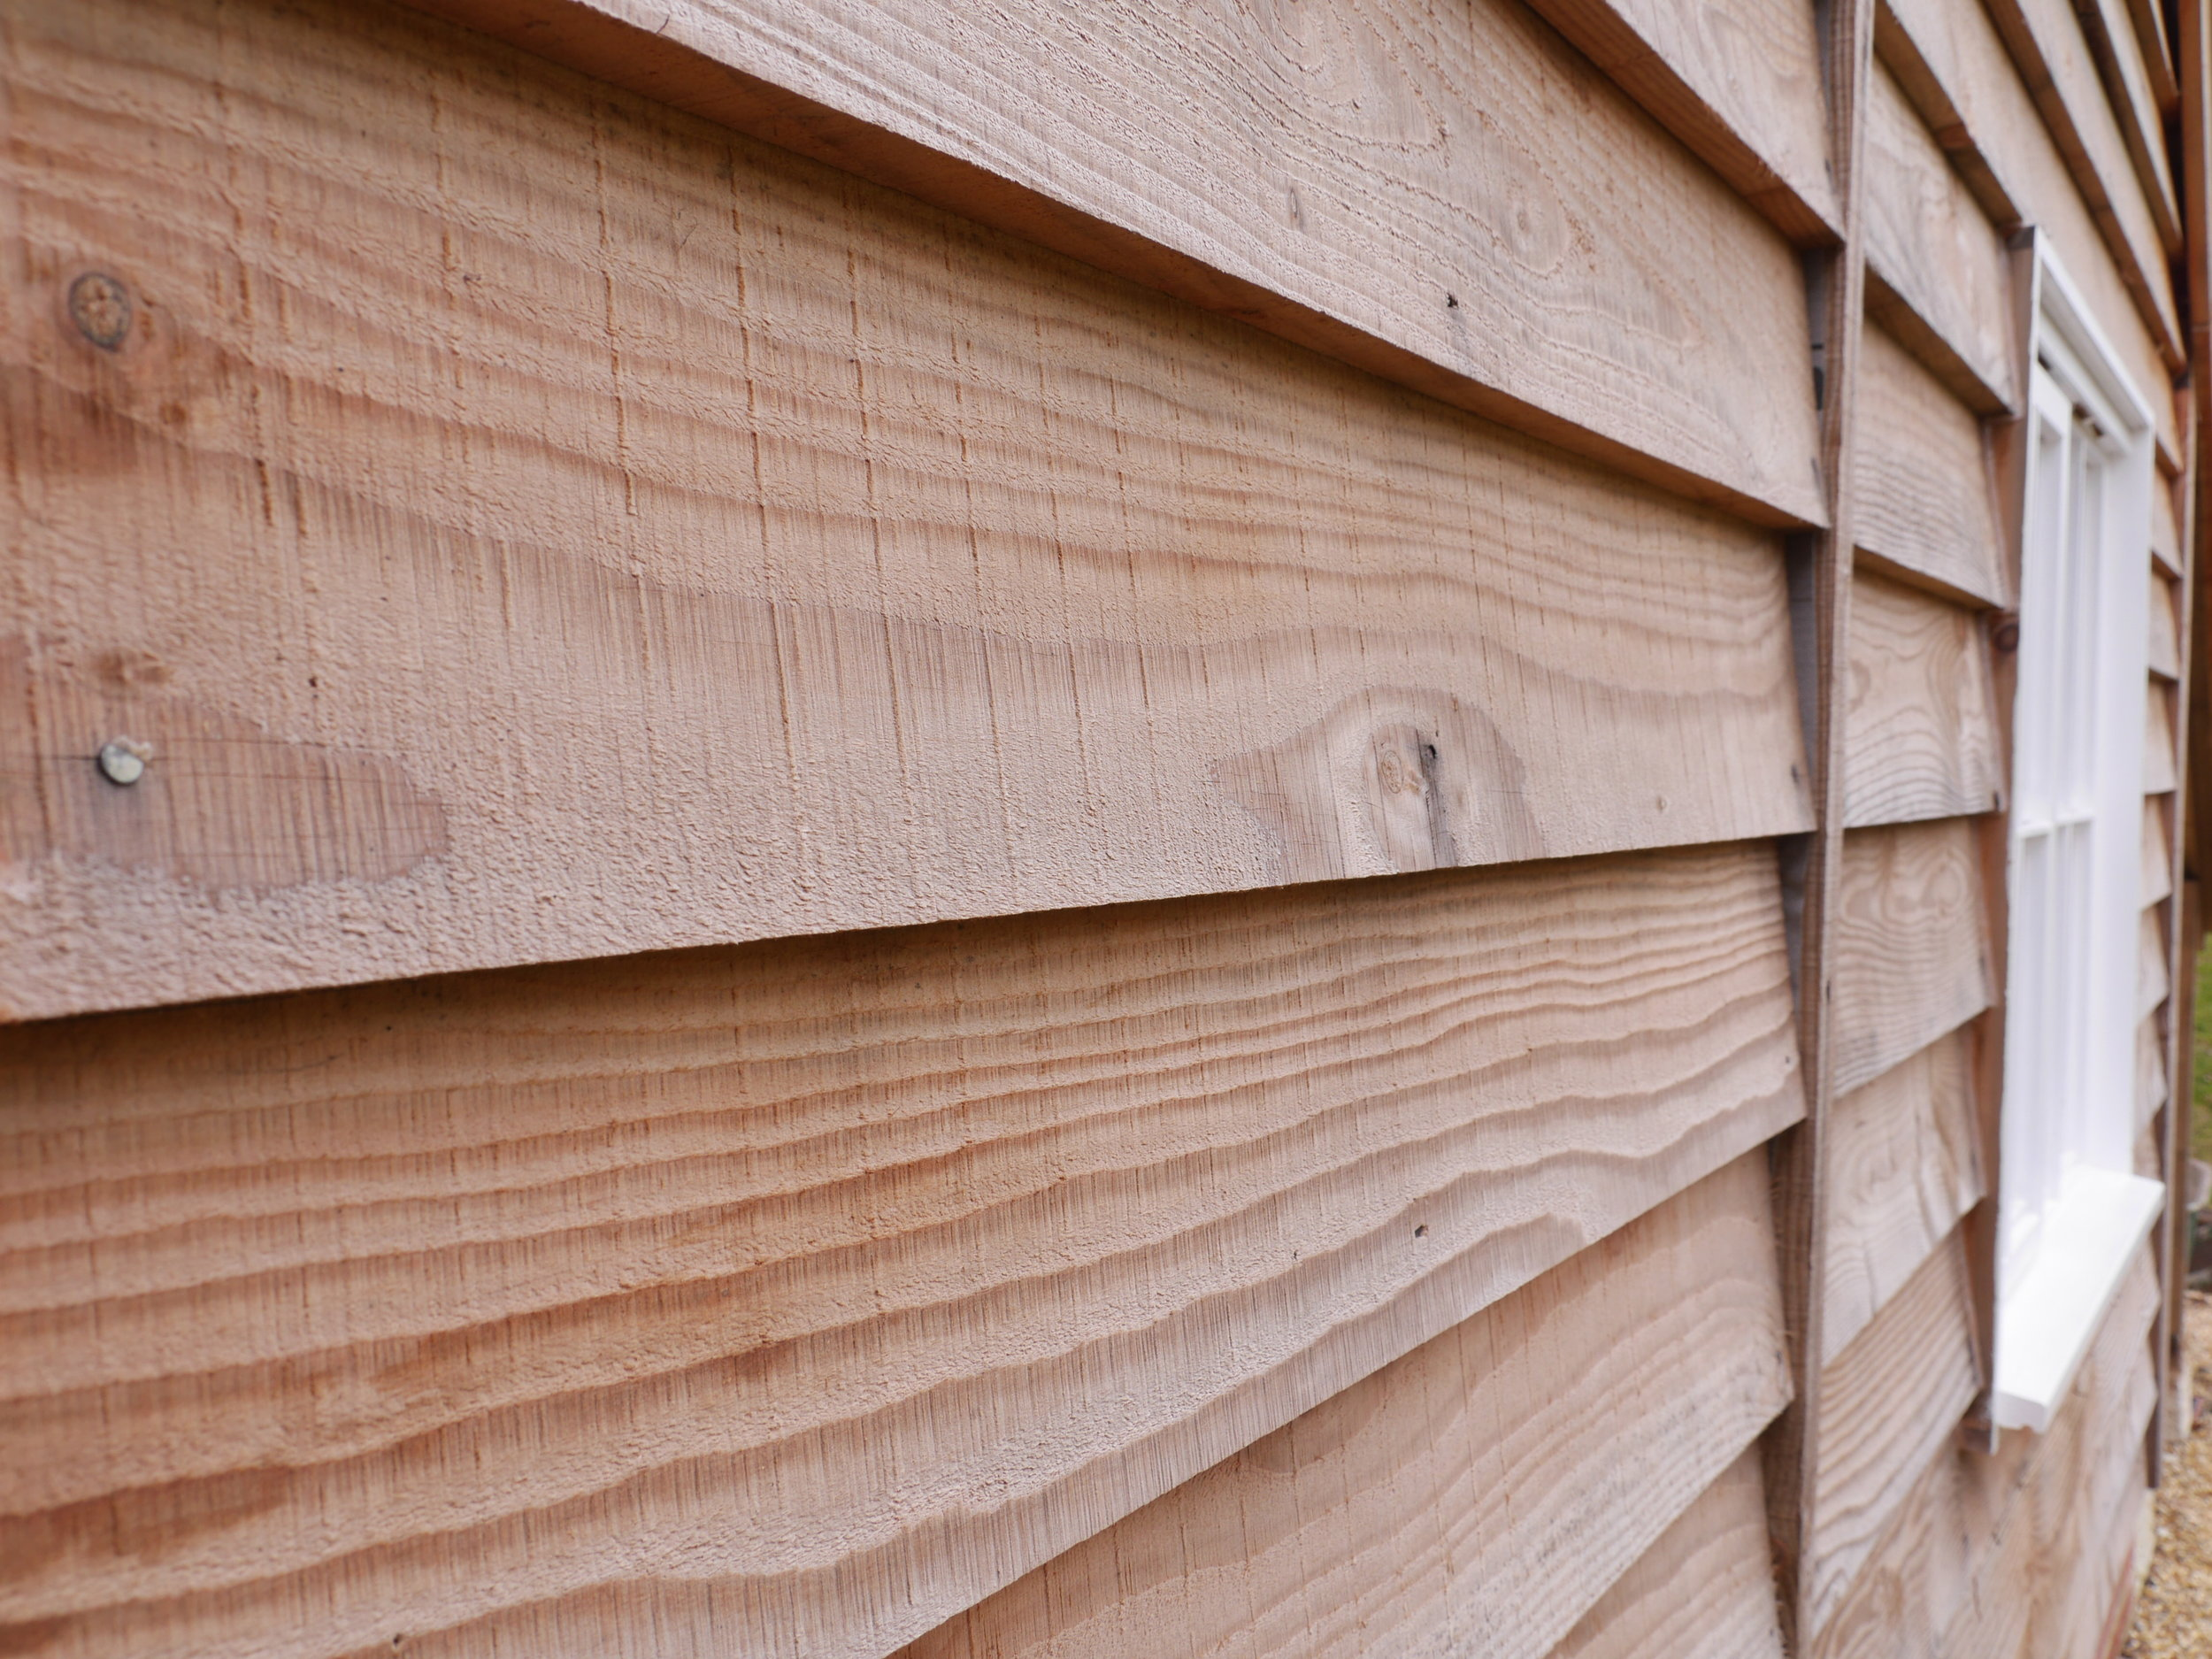 douglas fir feahteredge on a timber garage